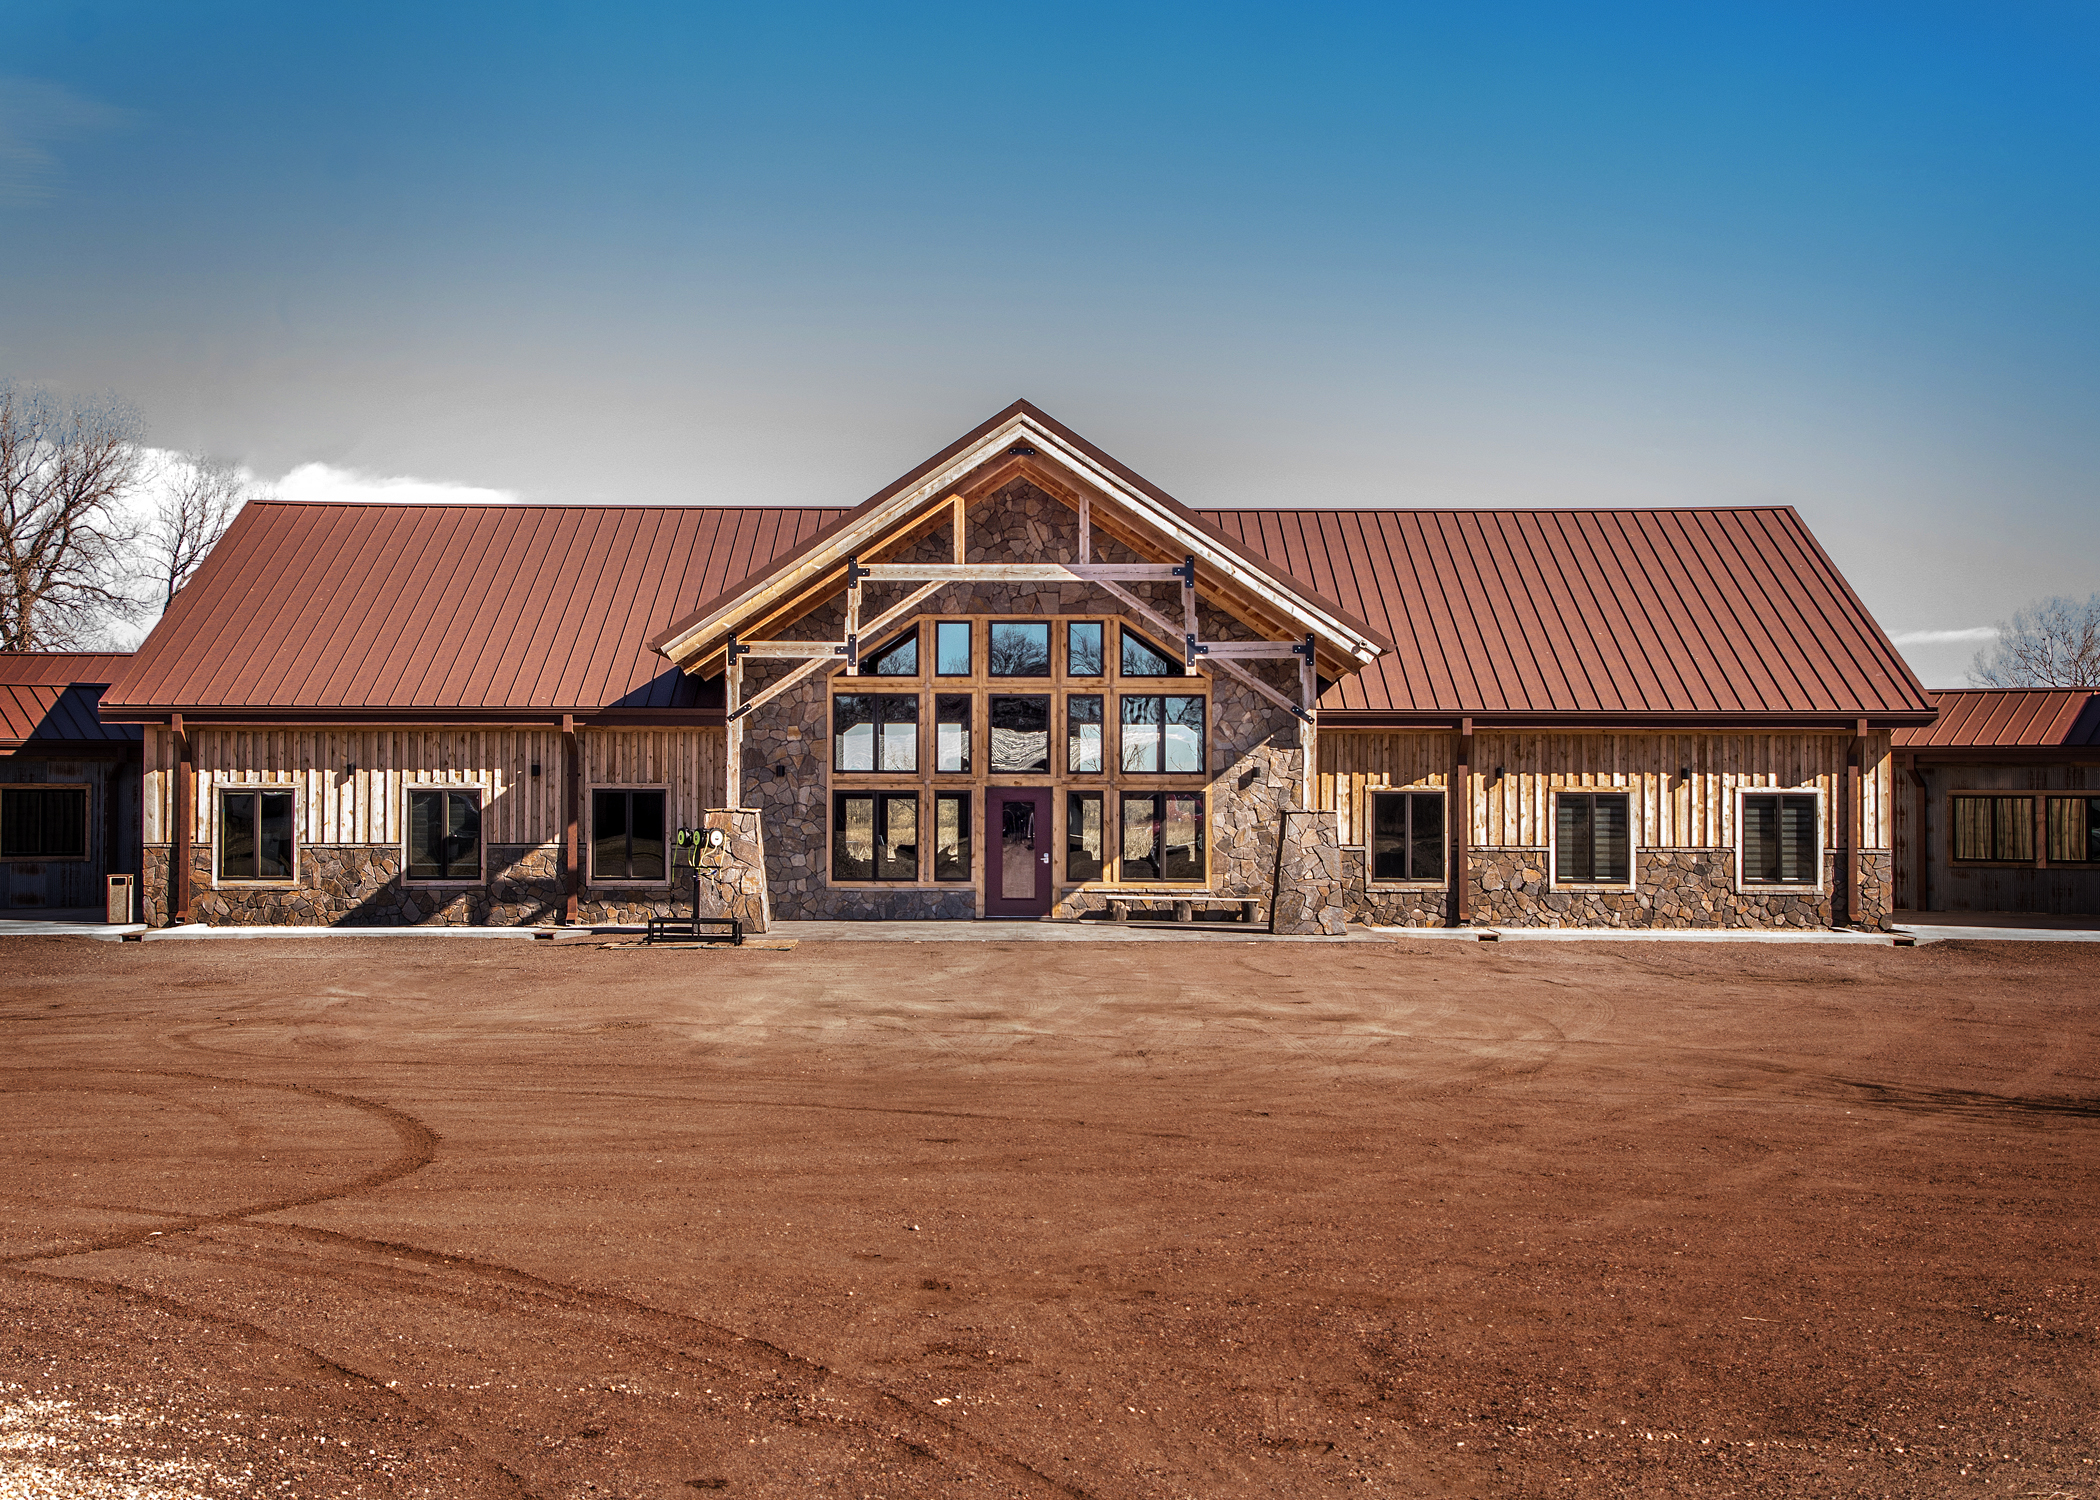 Western Rust Ranch Coated Metals Group